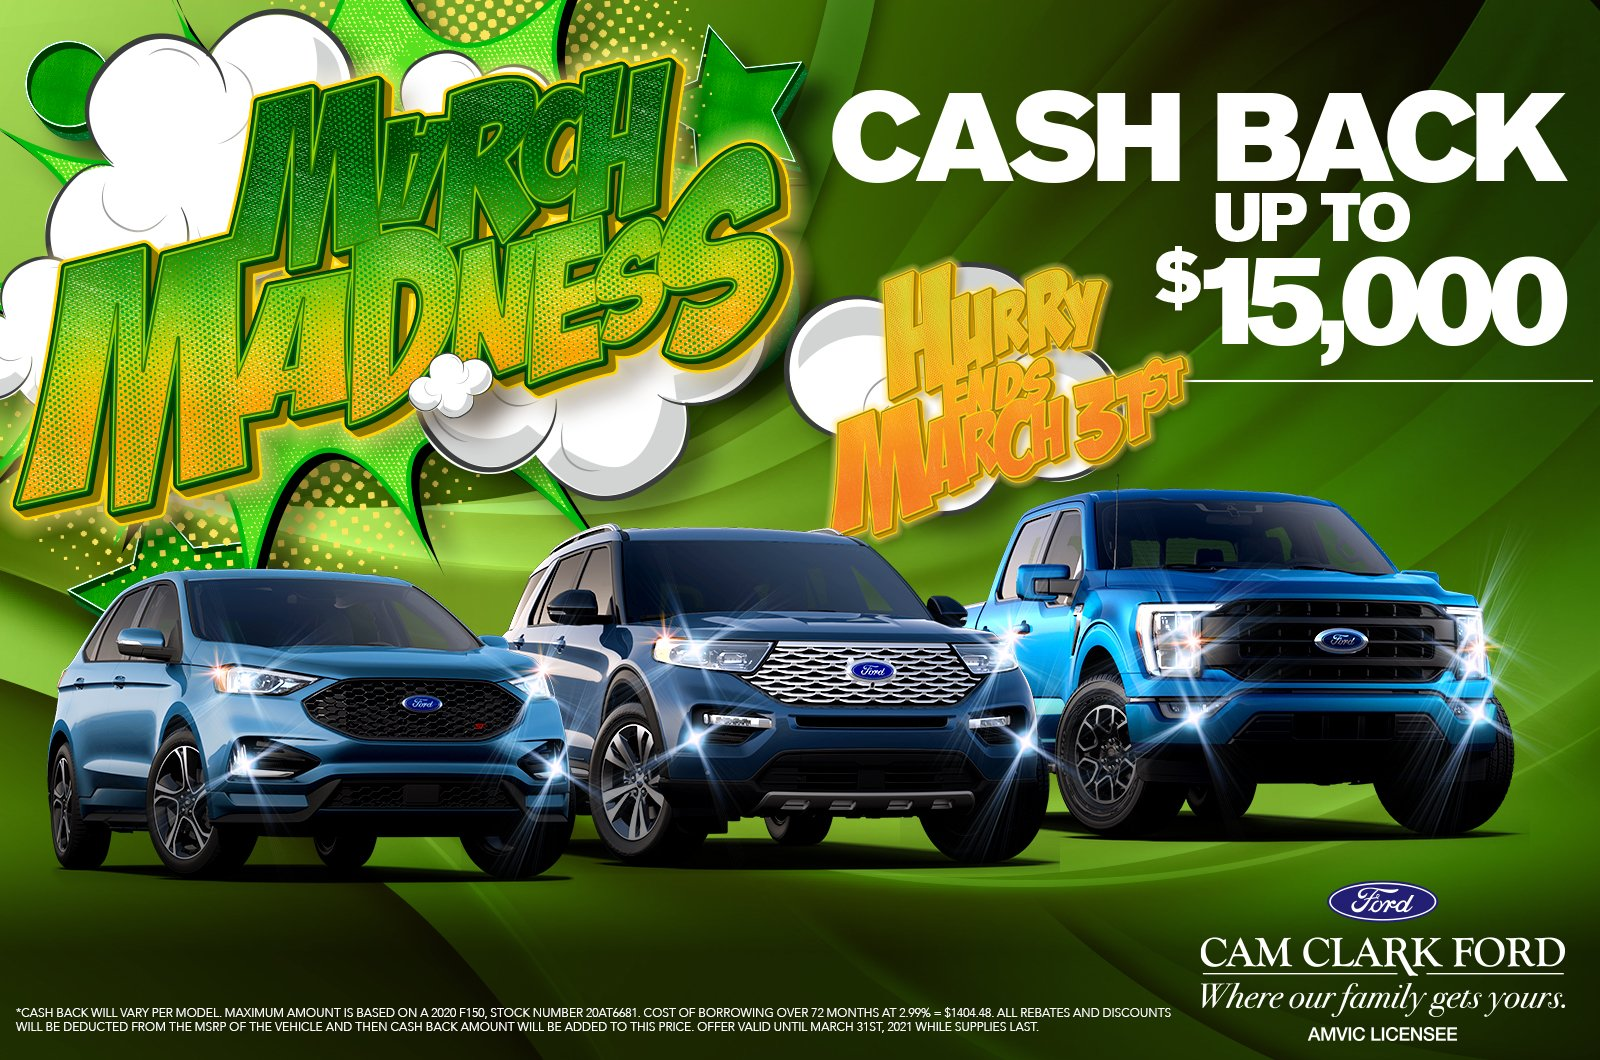 http://Up%20to%20$15,000%20Cash%20Back